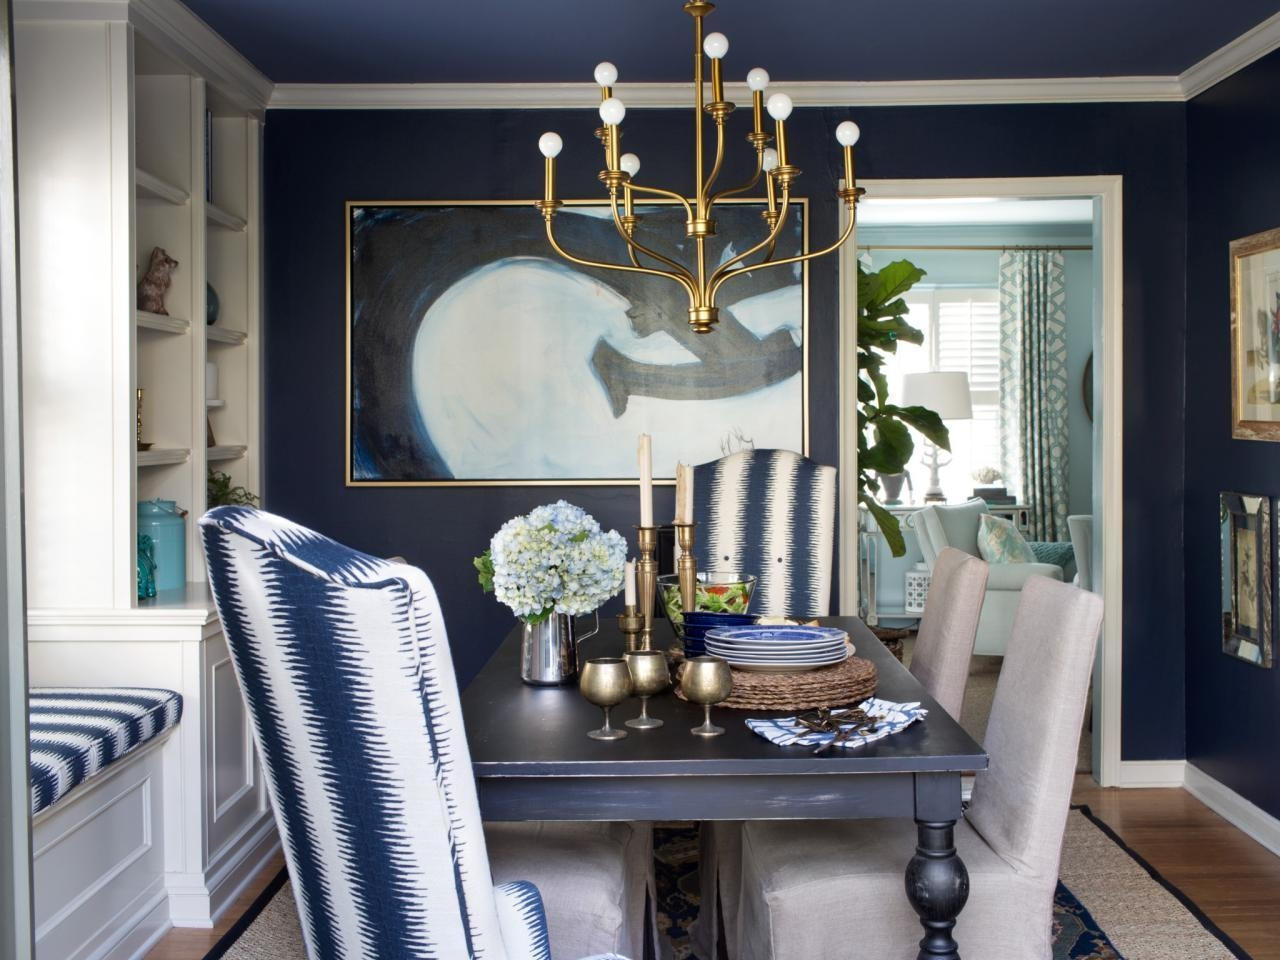 15 Ways To Dress Up Your Dining Room Walls | Hgtv's Decorating With Formal Dining Room Wall Art (View 2 of 20)